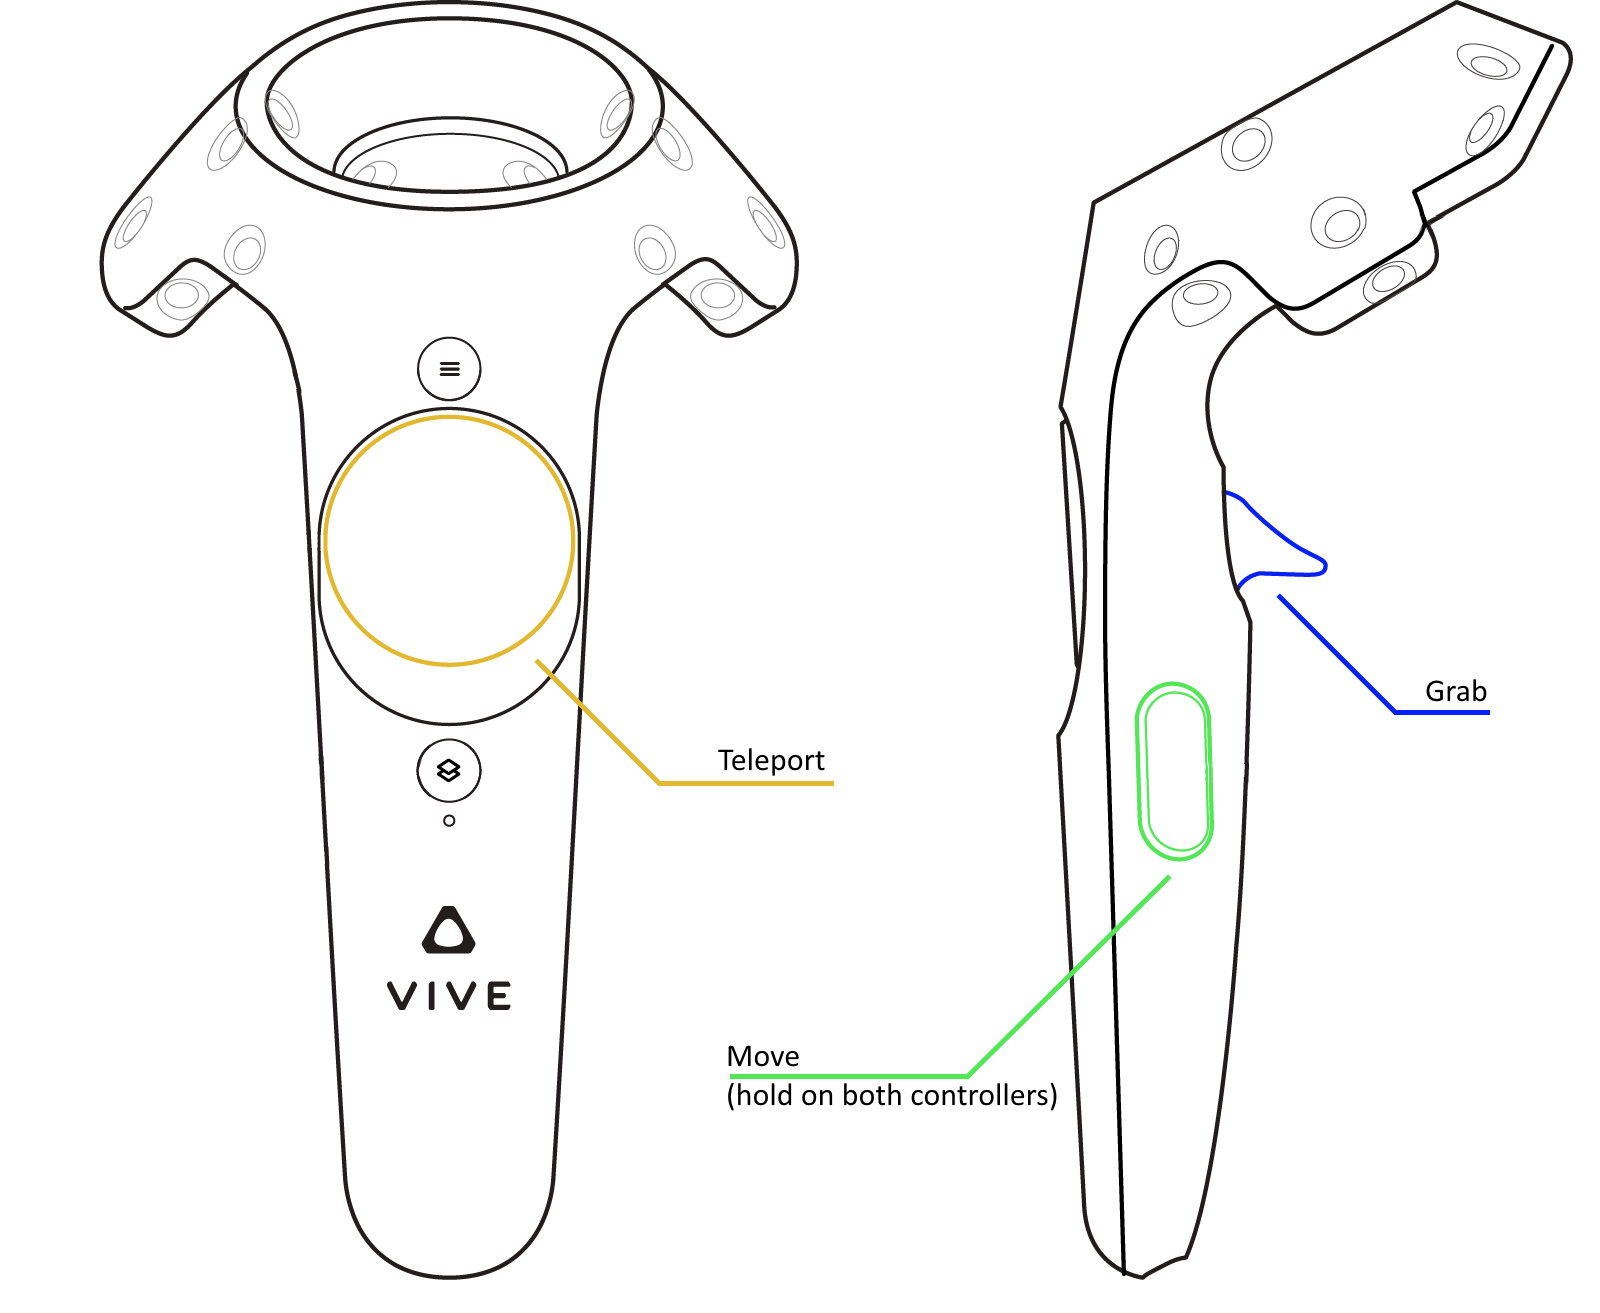 Catapult Vr Demo By Rustygears Diagram Of A